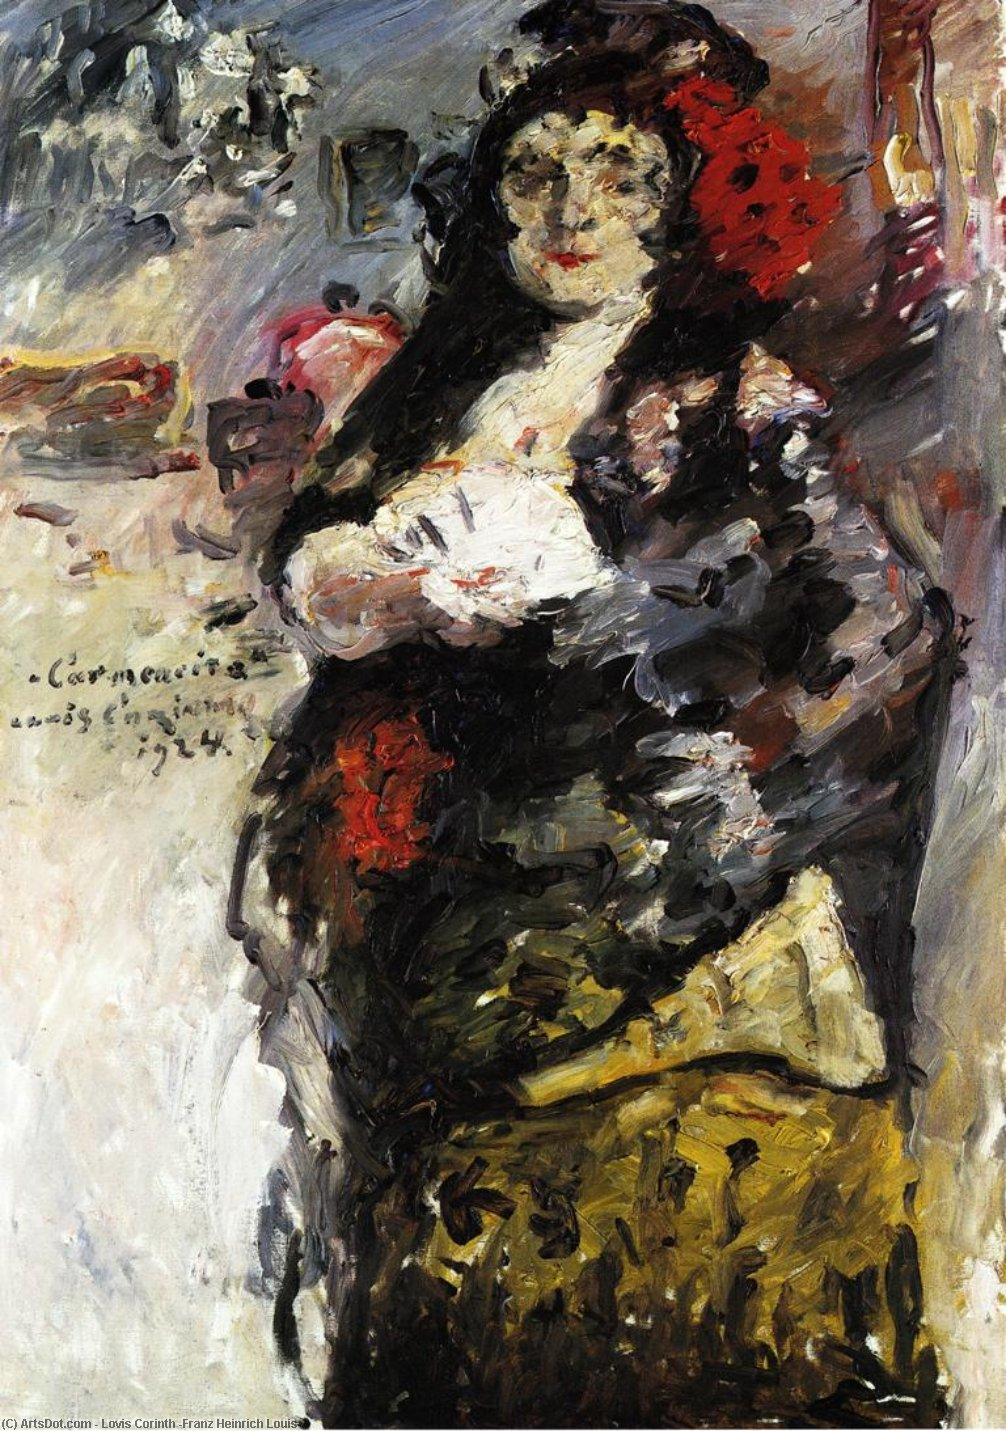 Карменсита, холст, масло по Lovis Corinth (Franz Heinrich Louis) (1858-1925, Netherlands)